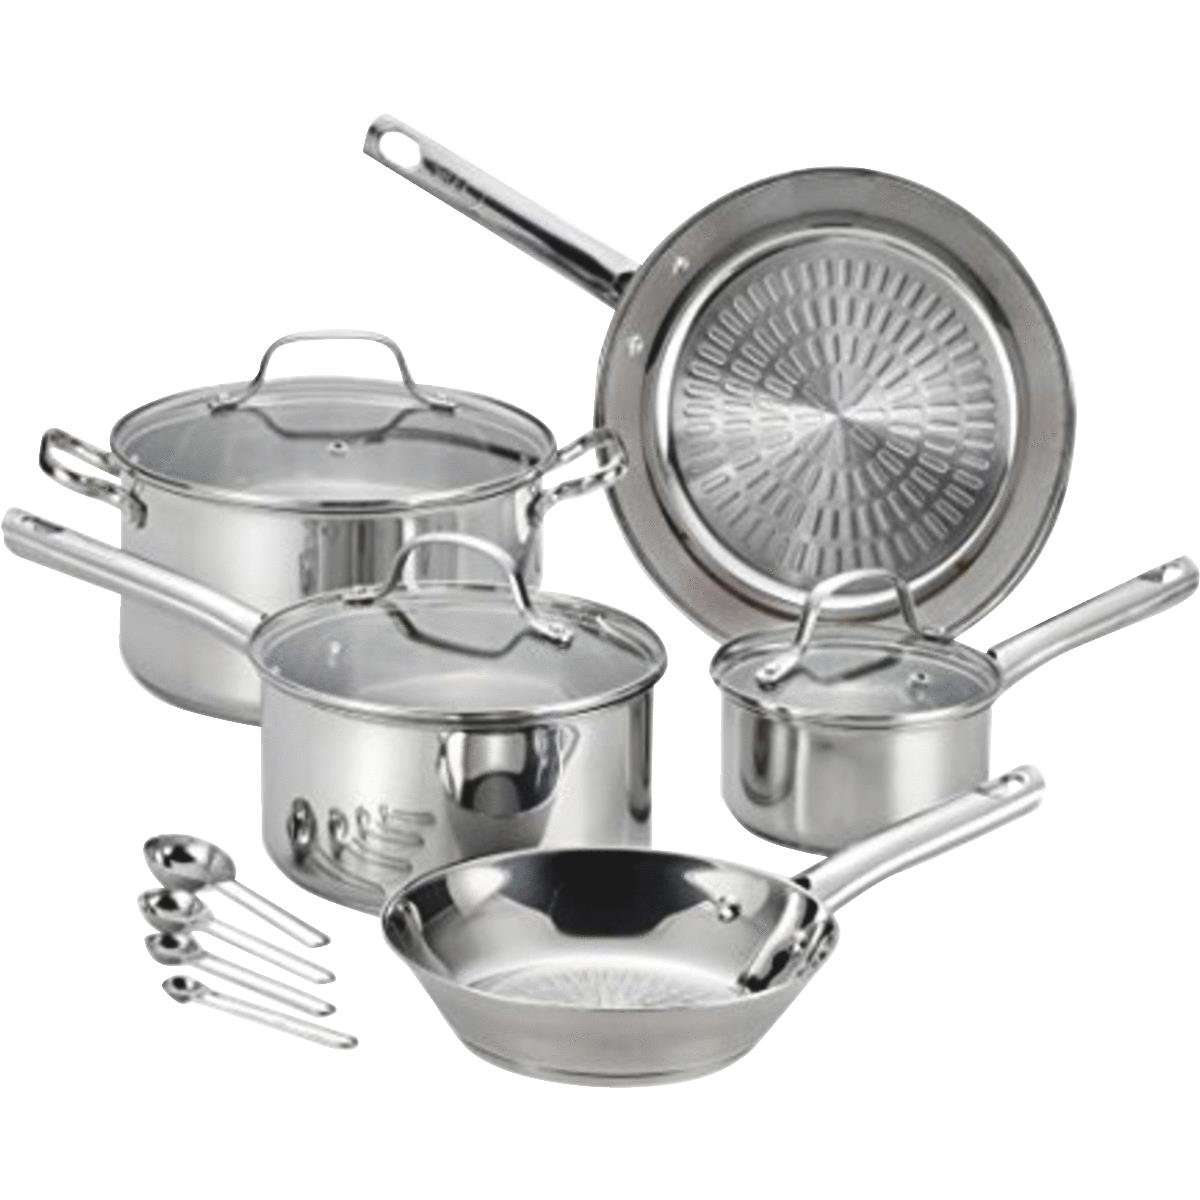 T-Fal Performa Stainless Steel 12Pc Set